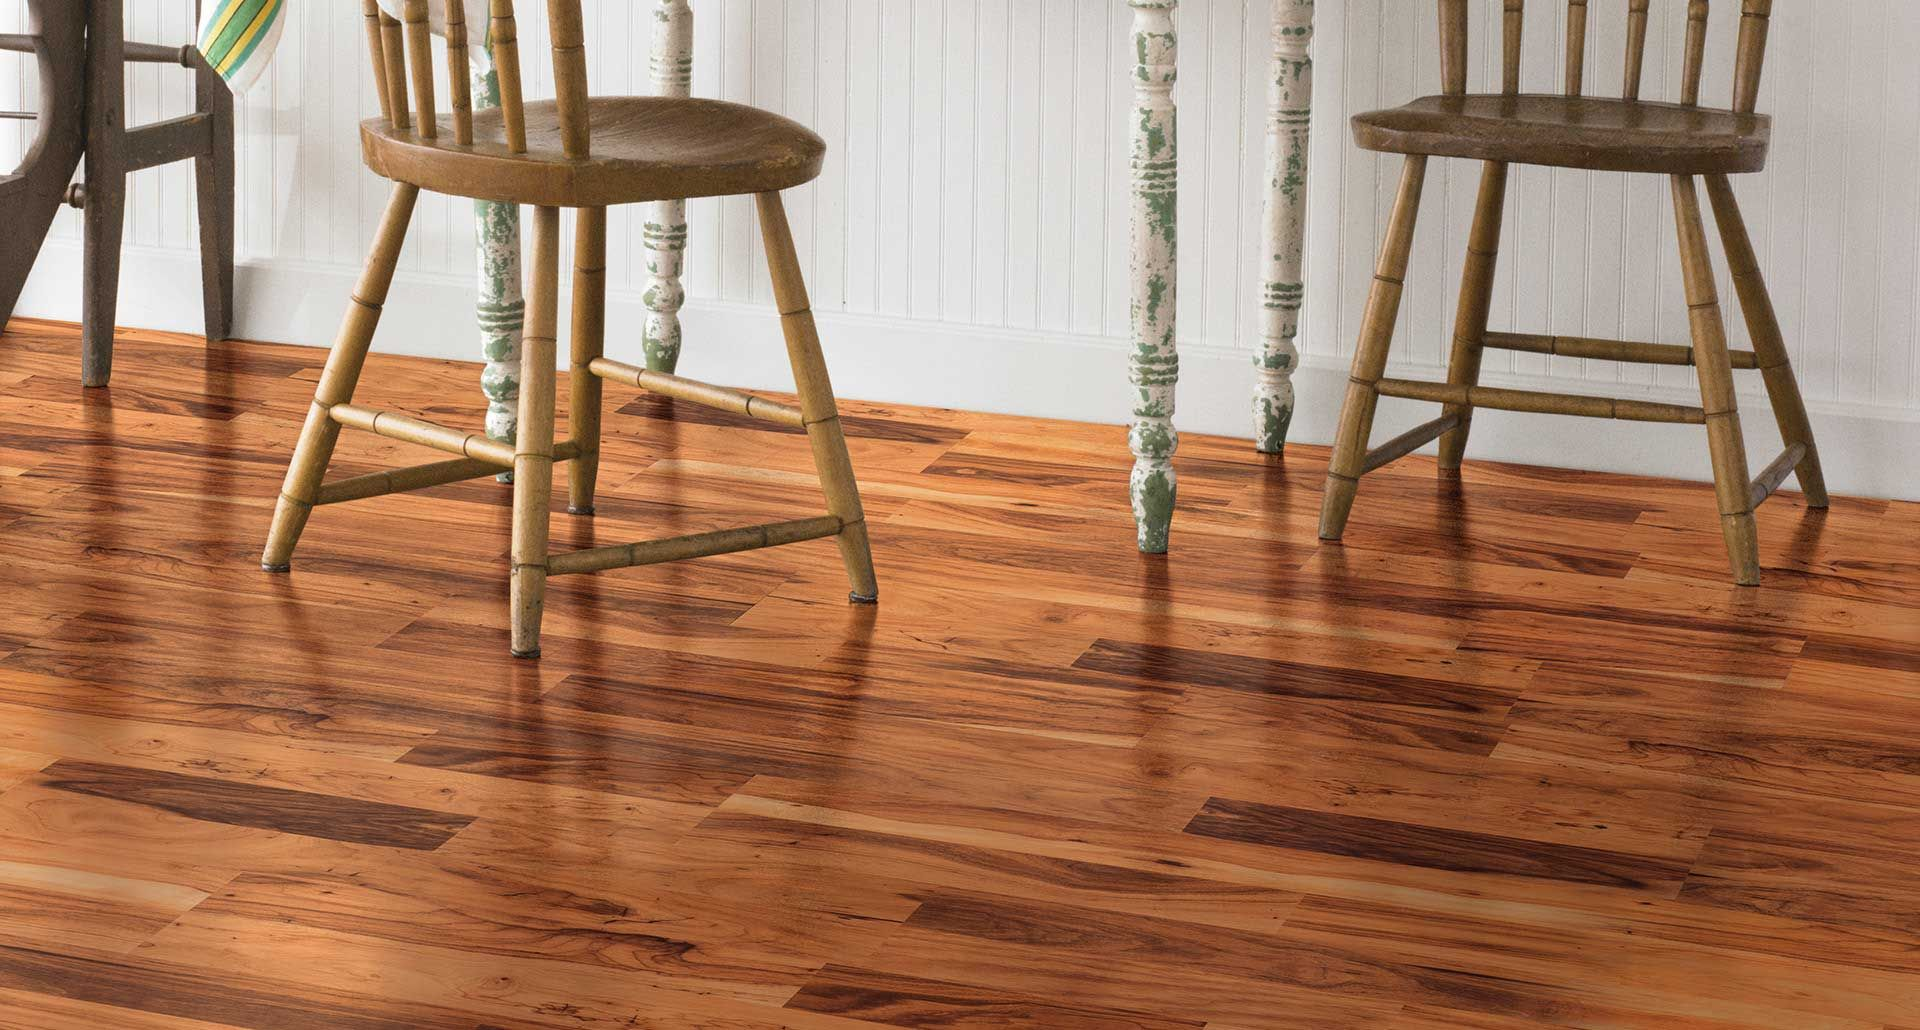 Midland Pecan Smooth Laminate Floor Medium Pecan Wood Finish 8mm 2 Strip Plank